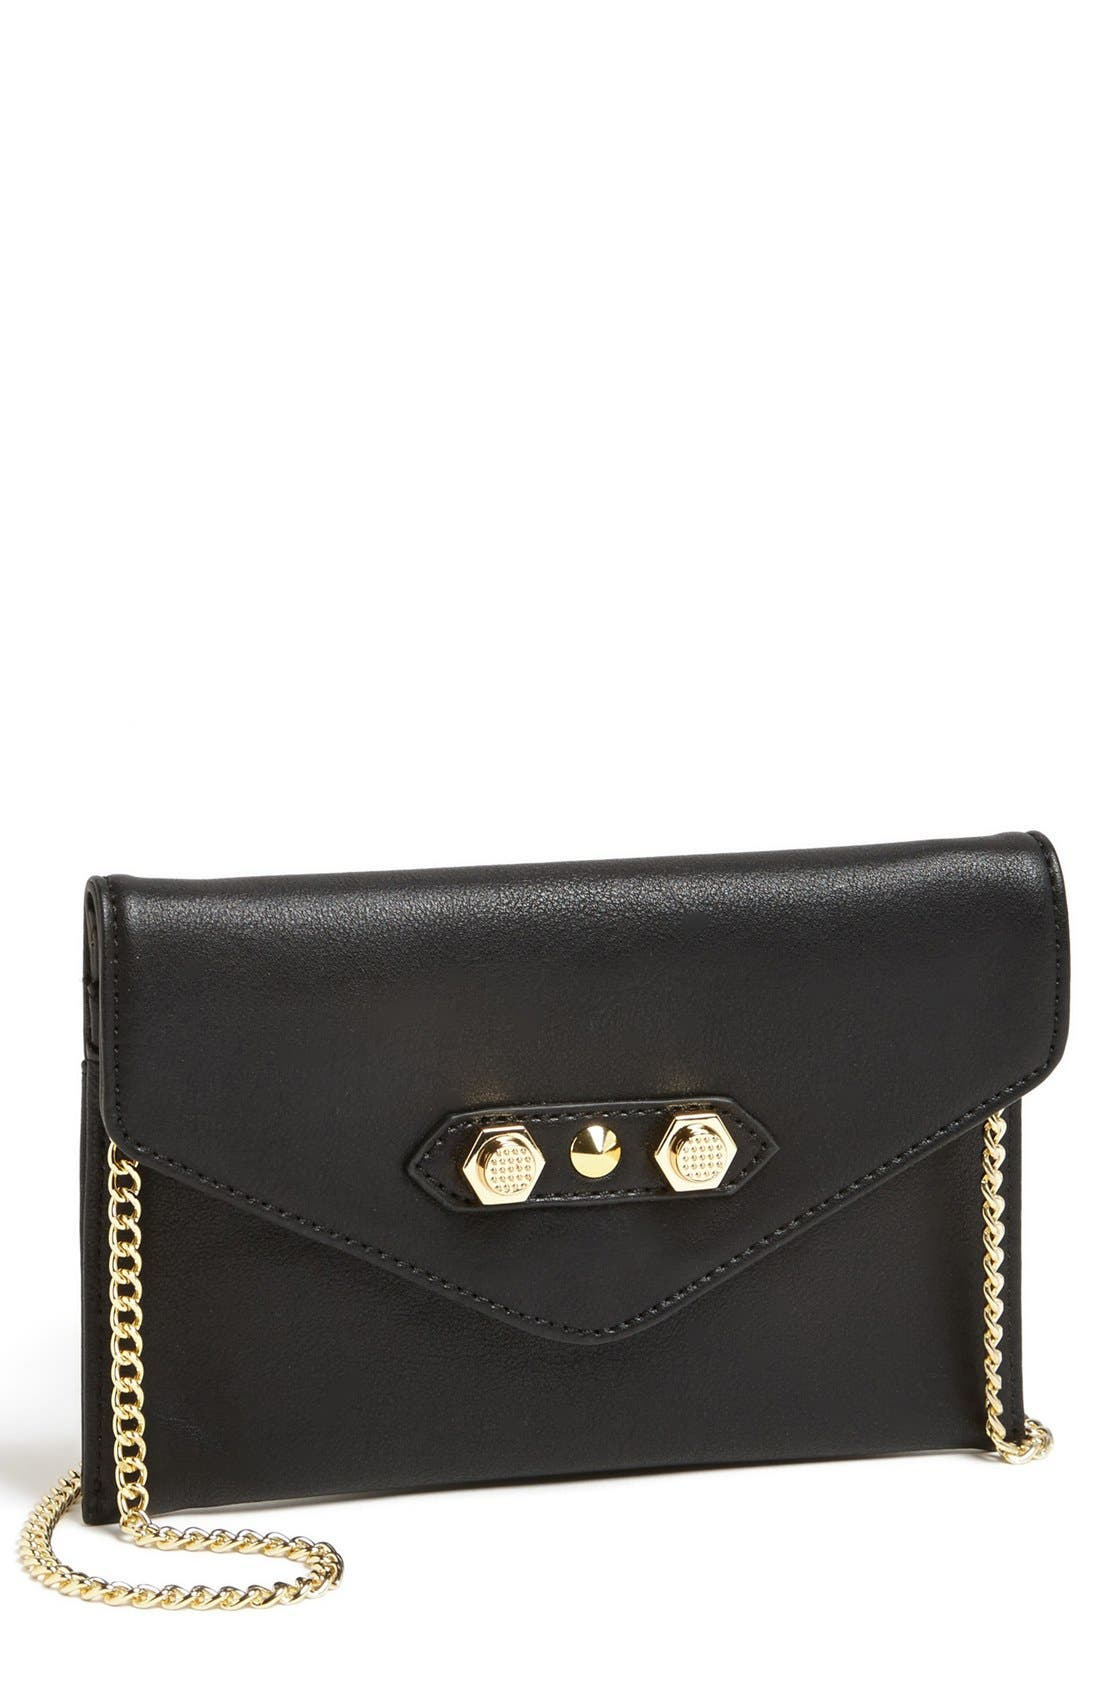 Main Image - Danielle Nicole 'Tina' Faux Leather Crossbody Pouch